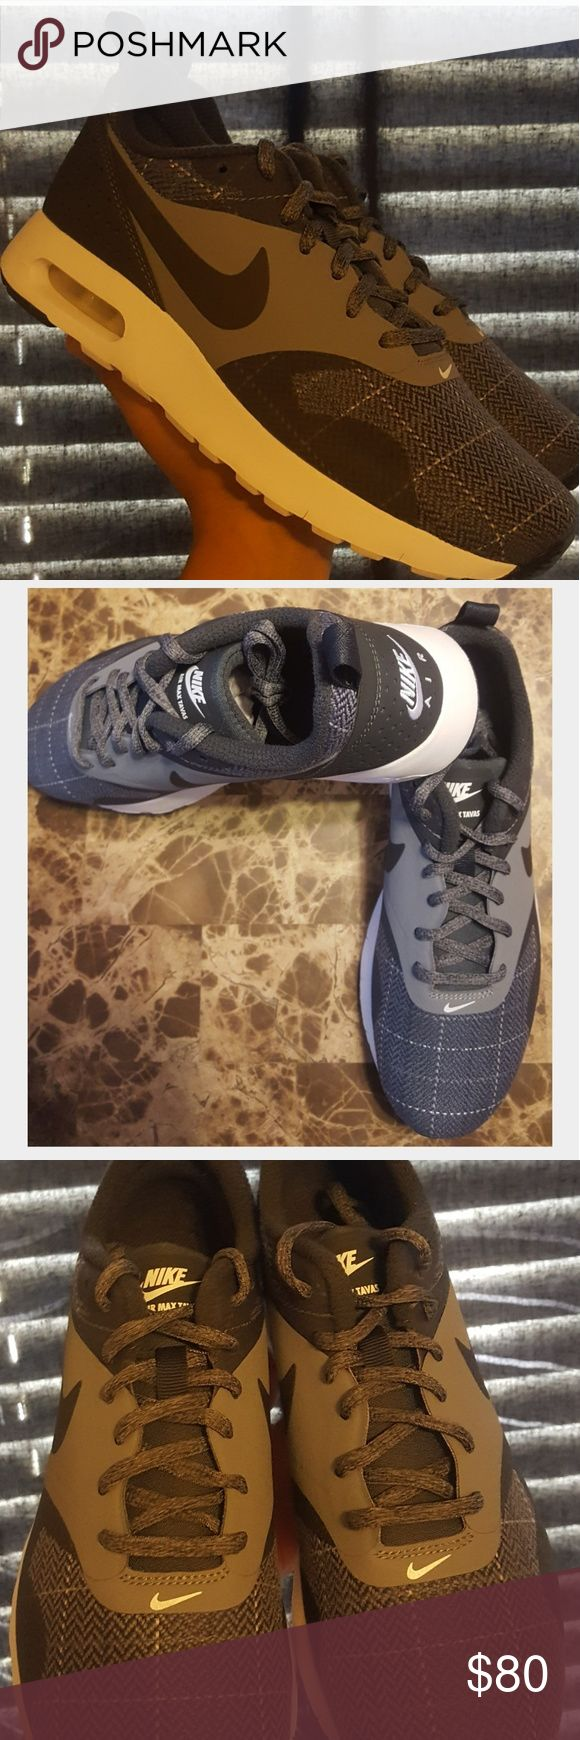 NIB Nike Air Max TV $150 If you use TV great! Let's do it! If not, its totally up to you we can trade using sale price. No worries there! Thanks ladies!!! Nike Shoes Athletic Shoes